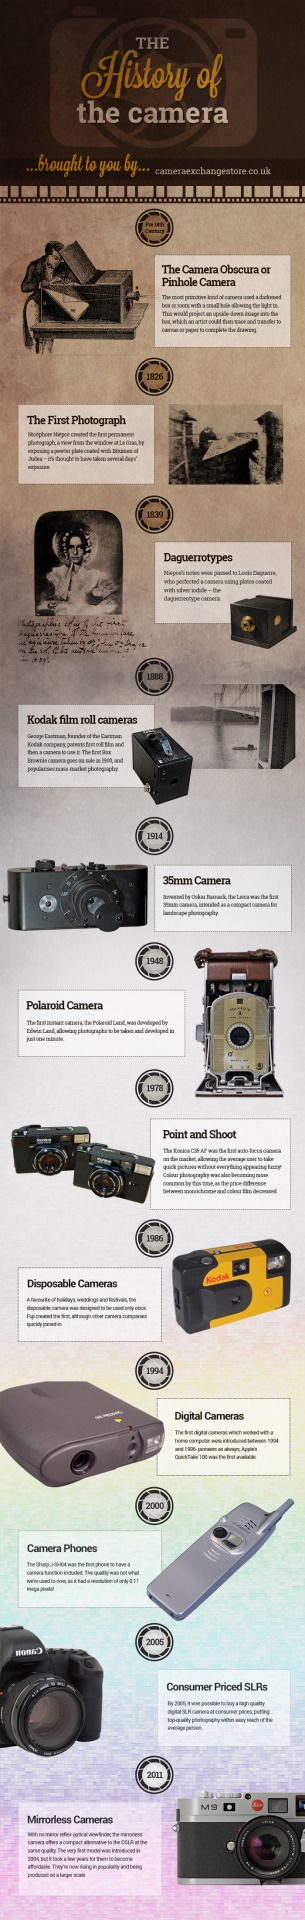 "thephoblographer: ""This Infographic Presents the History of the Camera Designer Ben Freeman created this infographic for the Camera Exchange store on the history of the camera. """